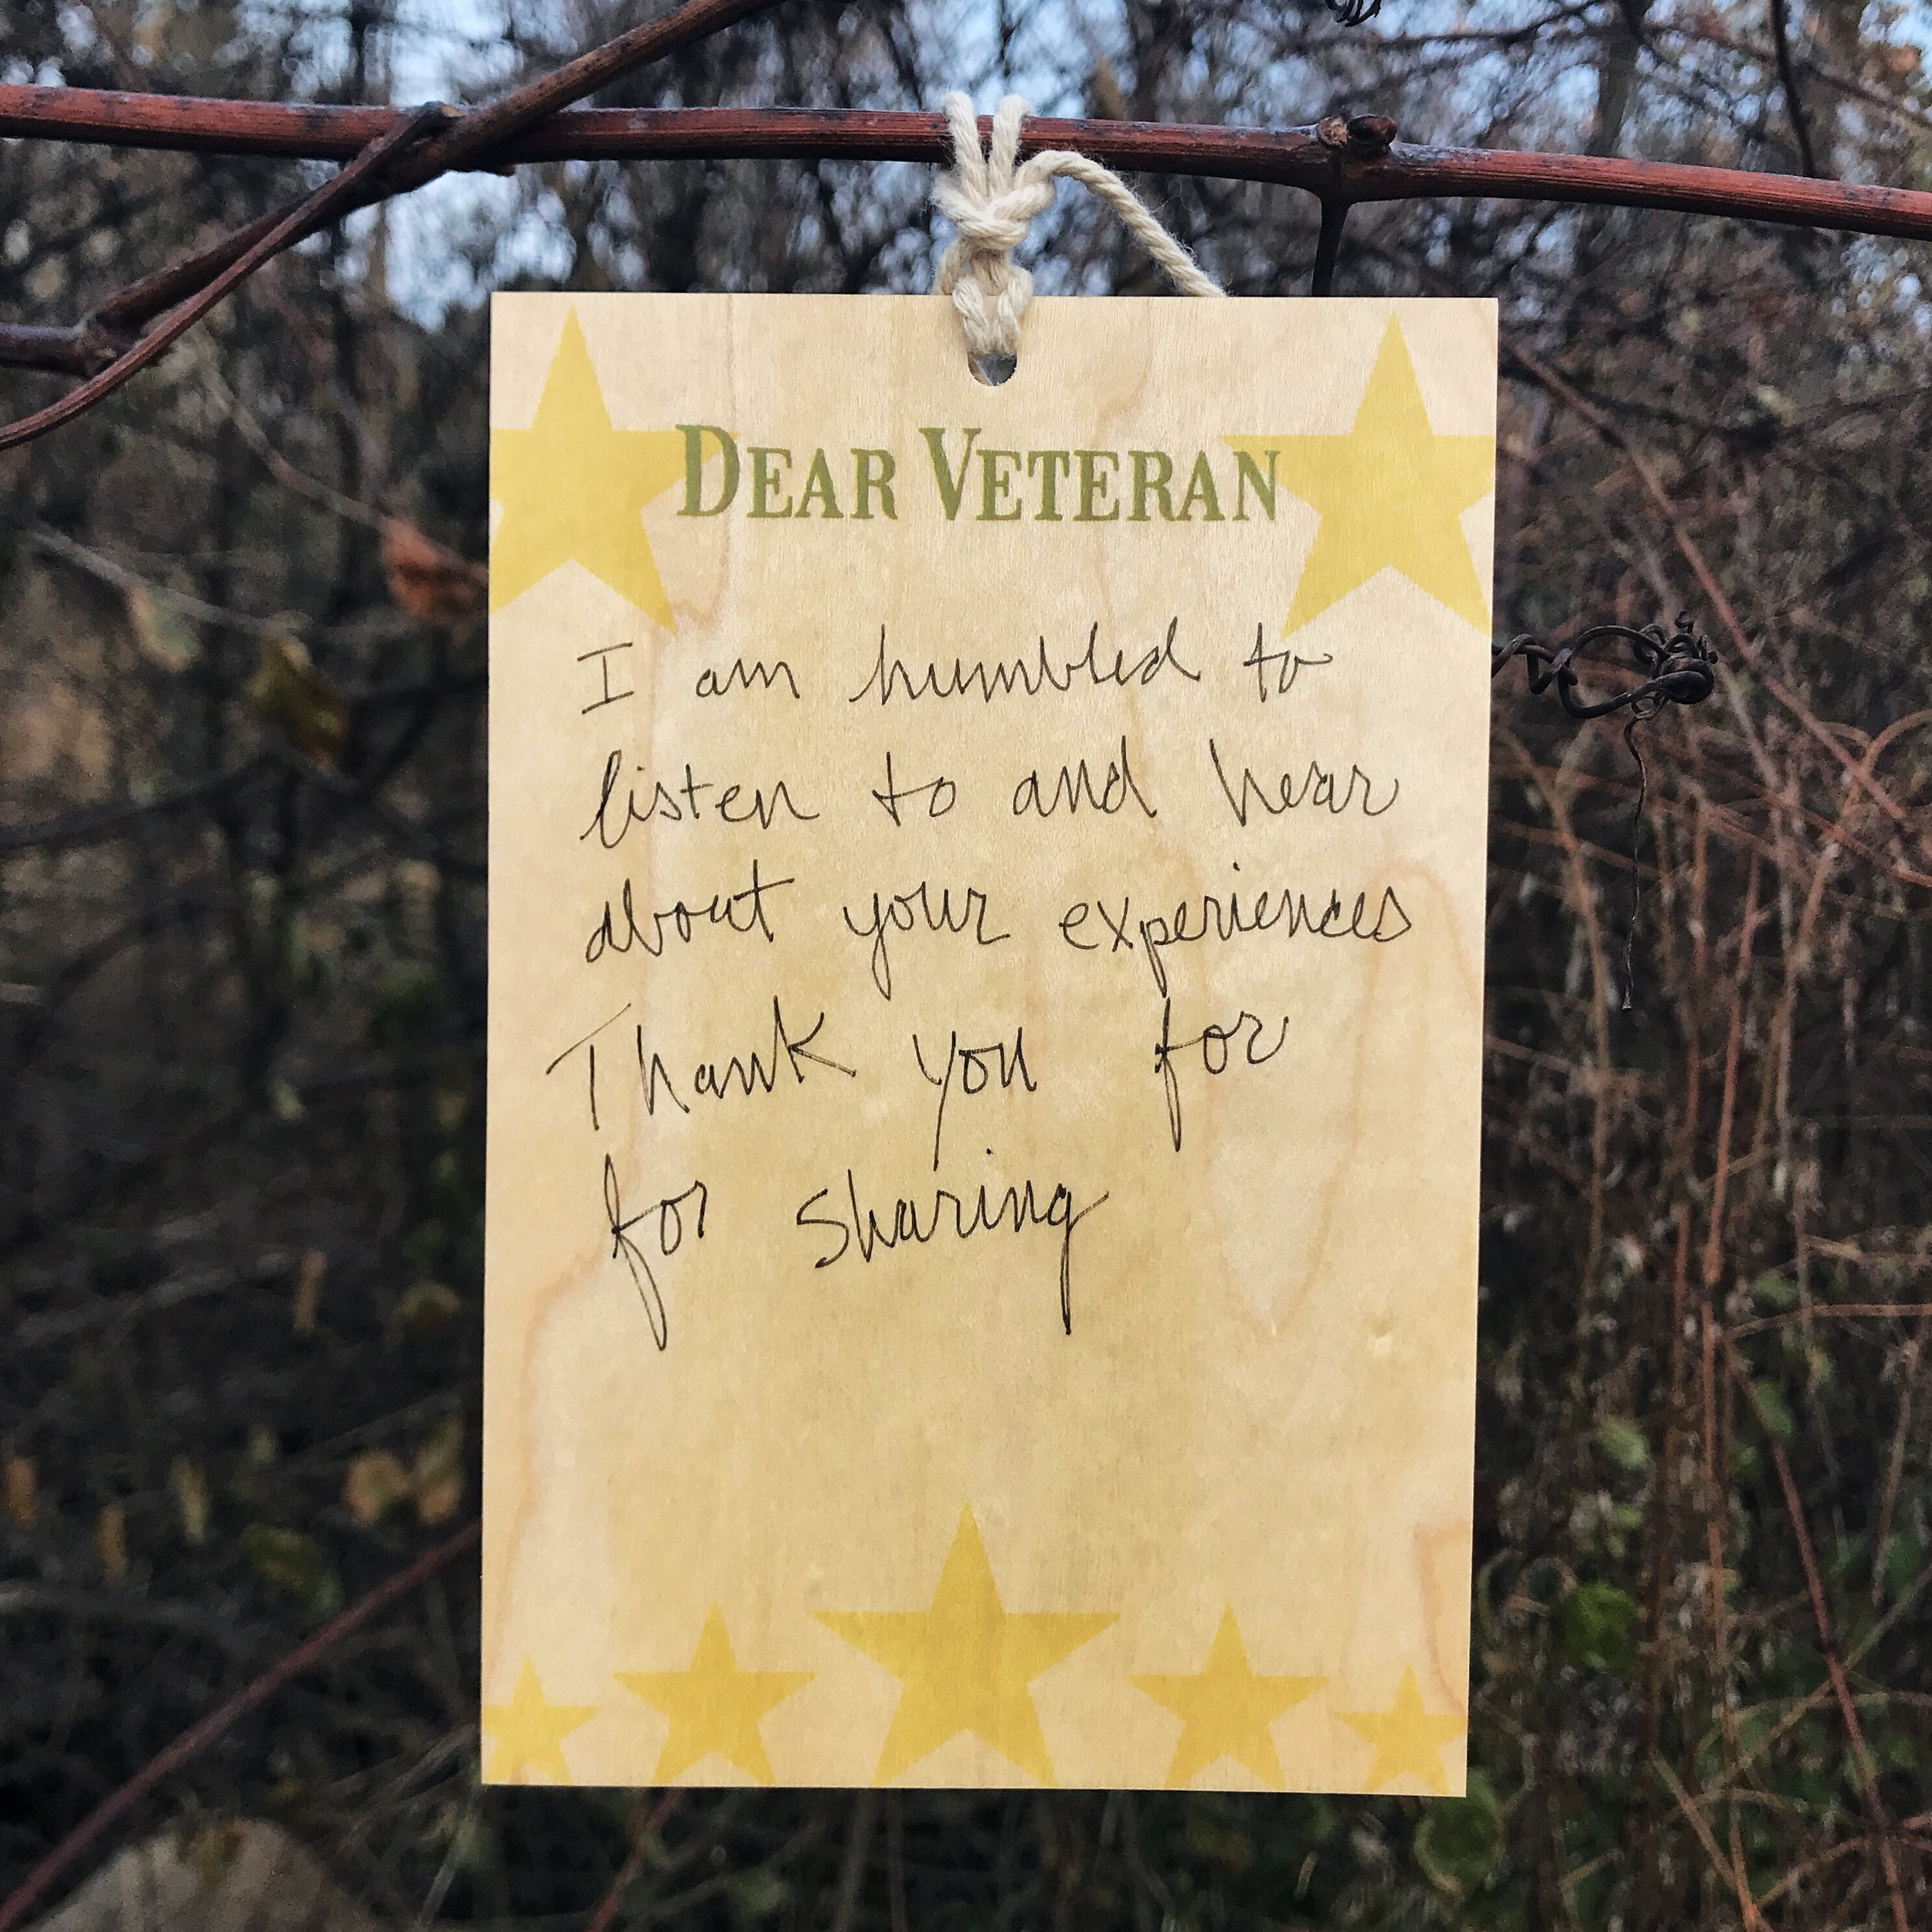 DearVeteran_NOV28_2017.JPG